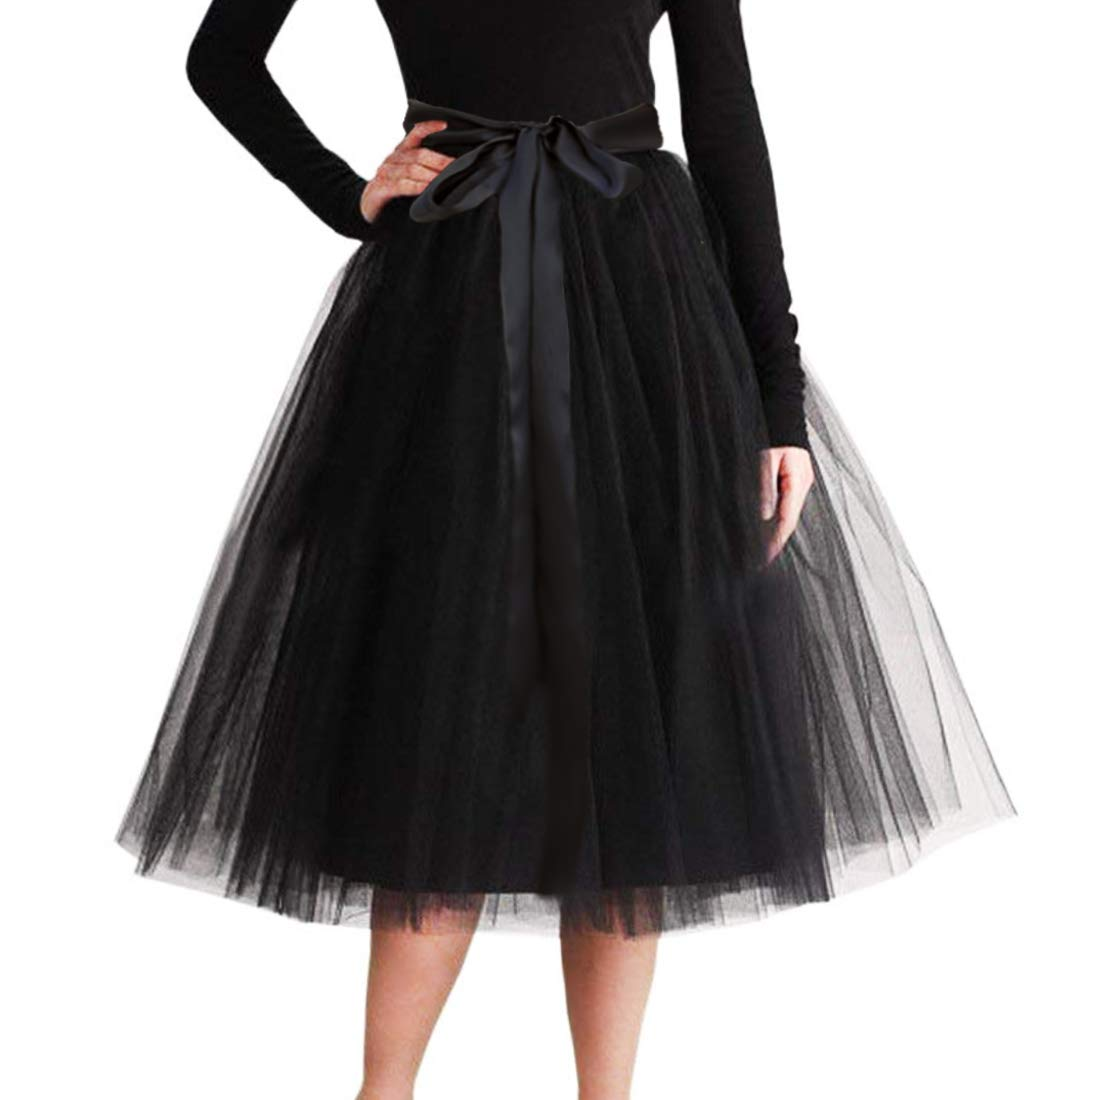 CahcyElilk Knee Length Tulle Skirt Midi Black Tutu Tulle Prom Princess Party Dance Skirt with Belt Black Small by CahcyElilk